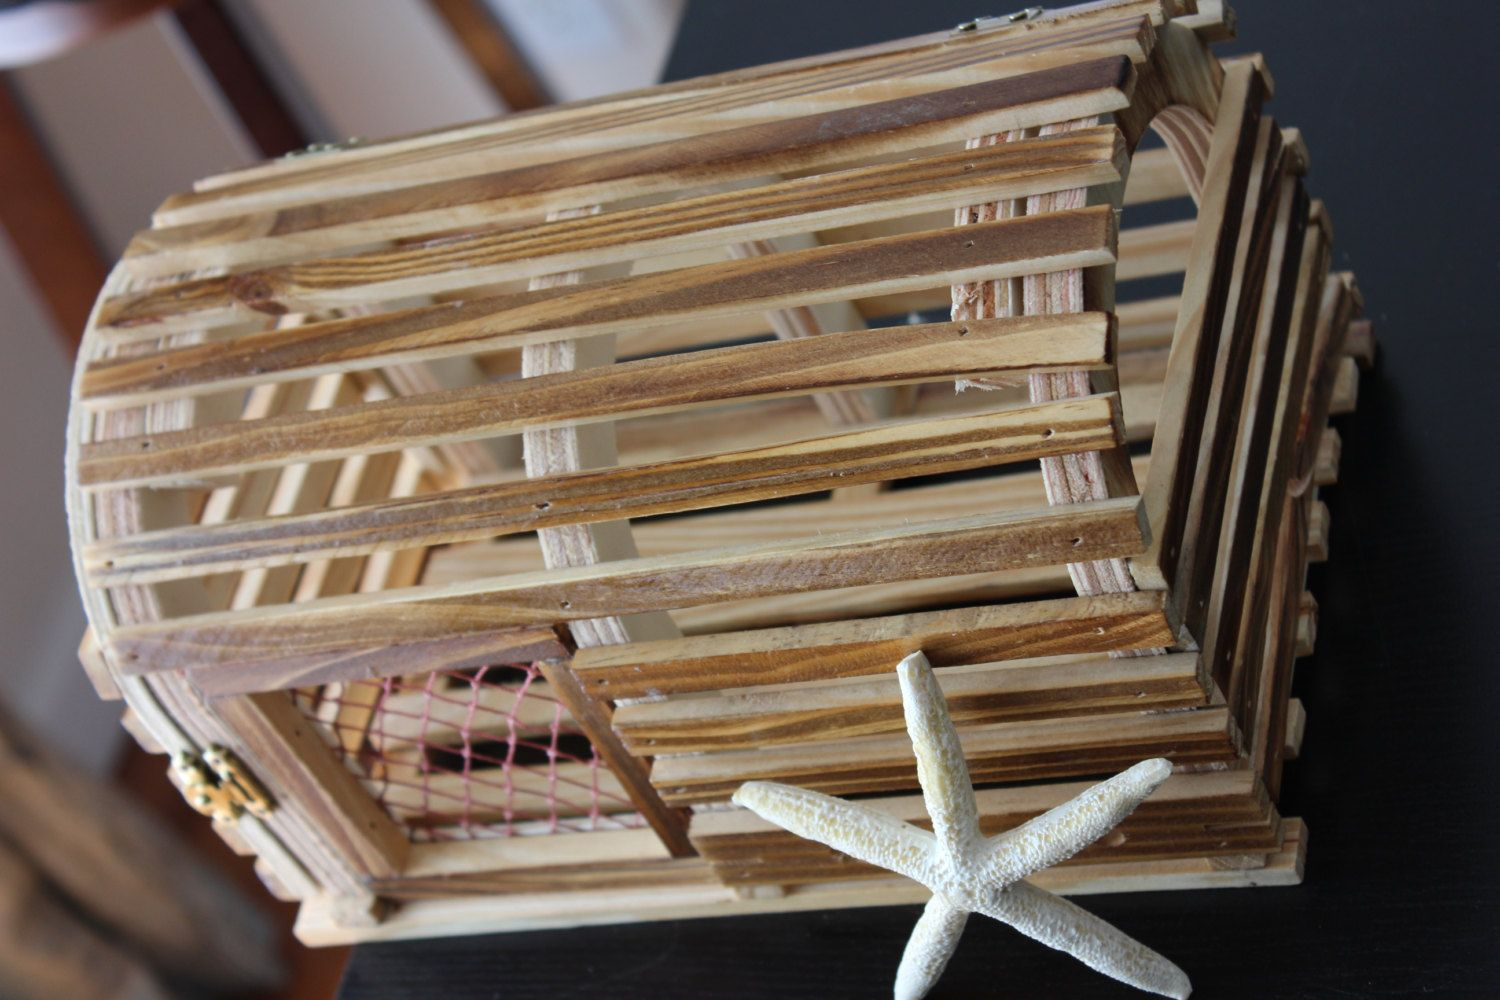 10 Decorative Lobster Trap Ideas for your Beach House | Lobster trap ...